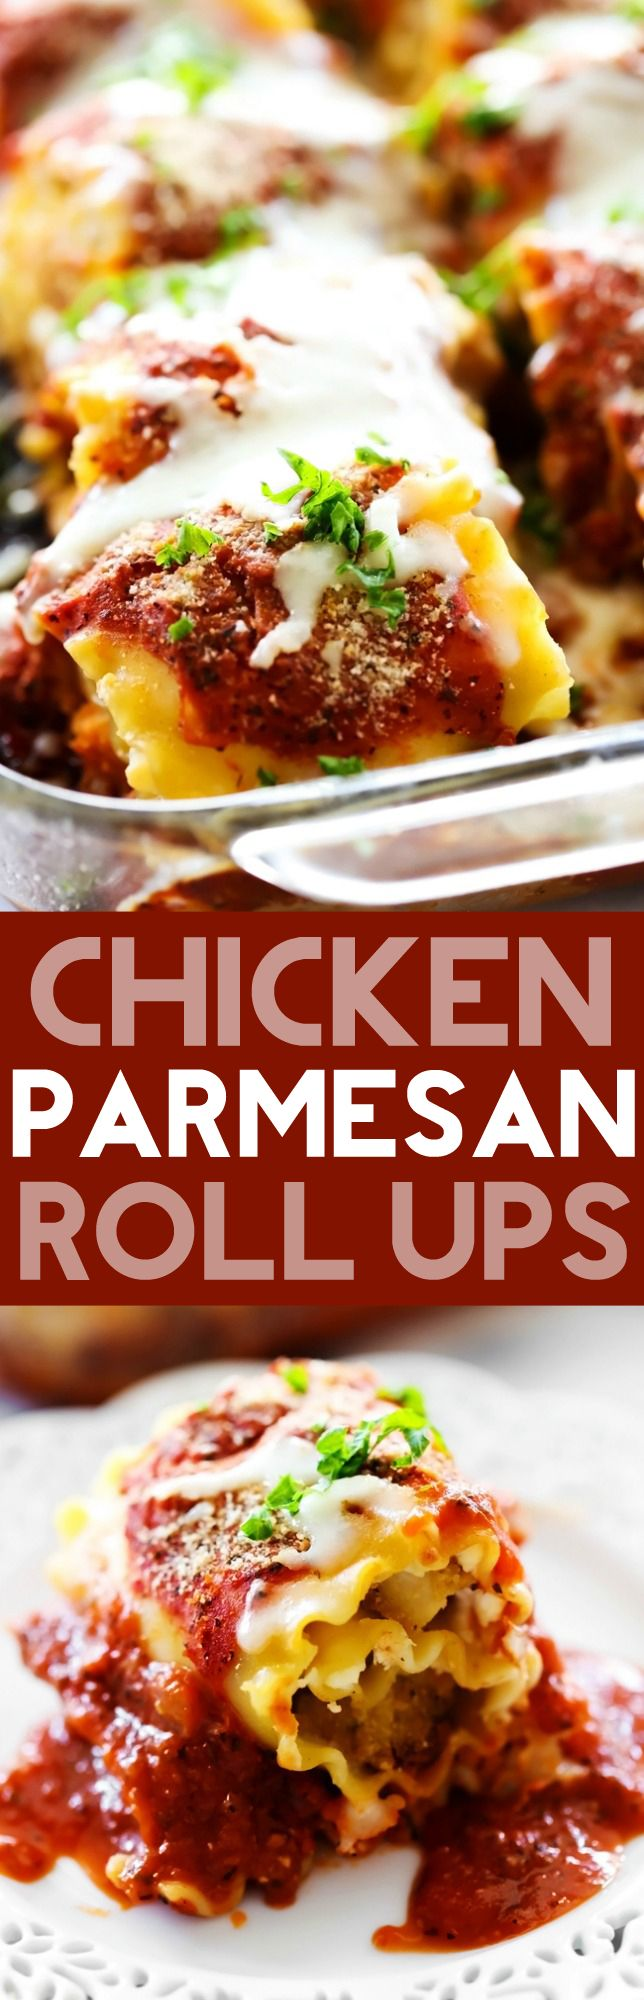 Chicken Parmesan Roll Ups.. Breaded Chicken and seasoned Parmesan Cream Cheese rolled up into lasagna noodles and covered in a delicious homemade marinara sauce. This dinner will quickly become a new favorite!